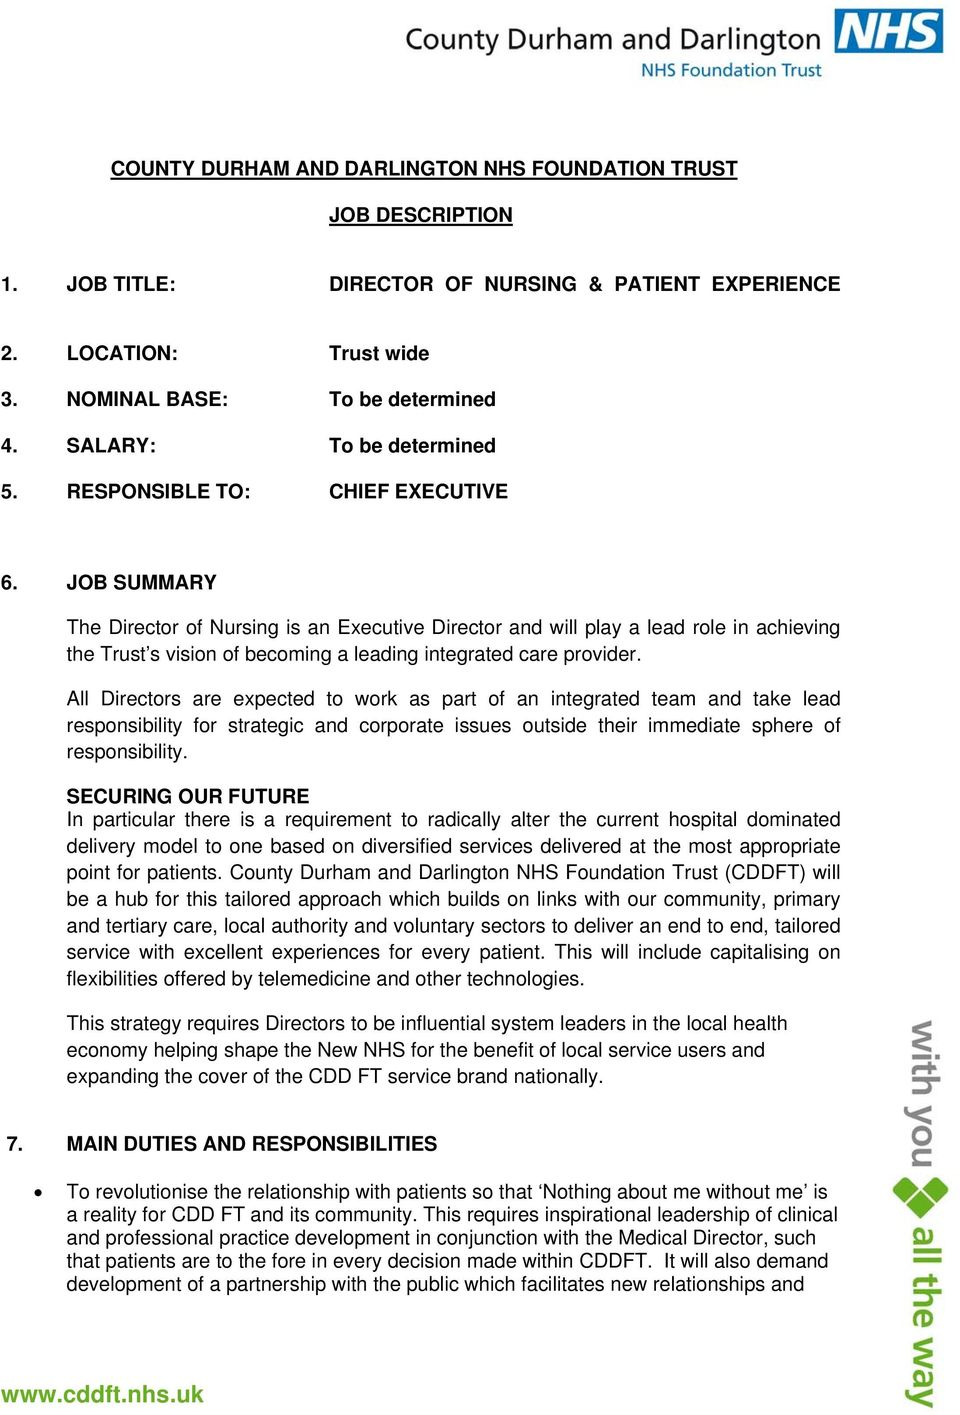 JOB SUMMARY The Director of Nursing is an Executive Director and will play a lead role in achieving the Trust s vision of becoming a leading integrated care provider.